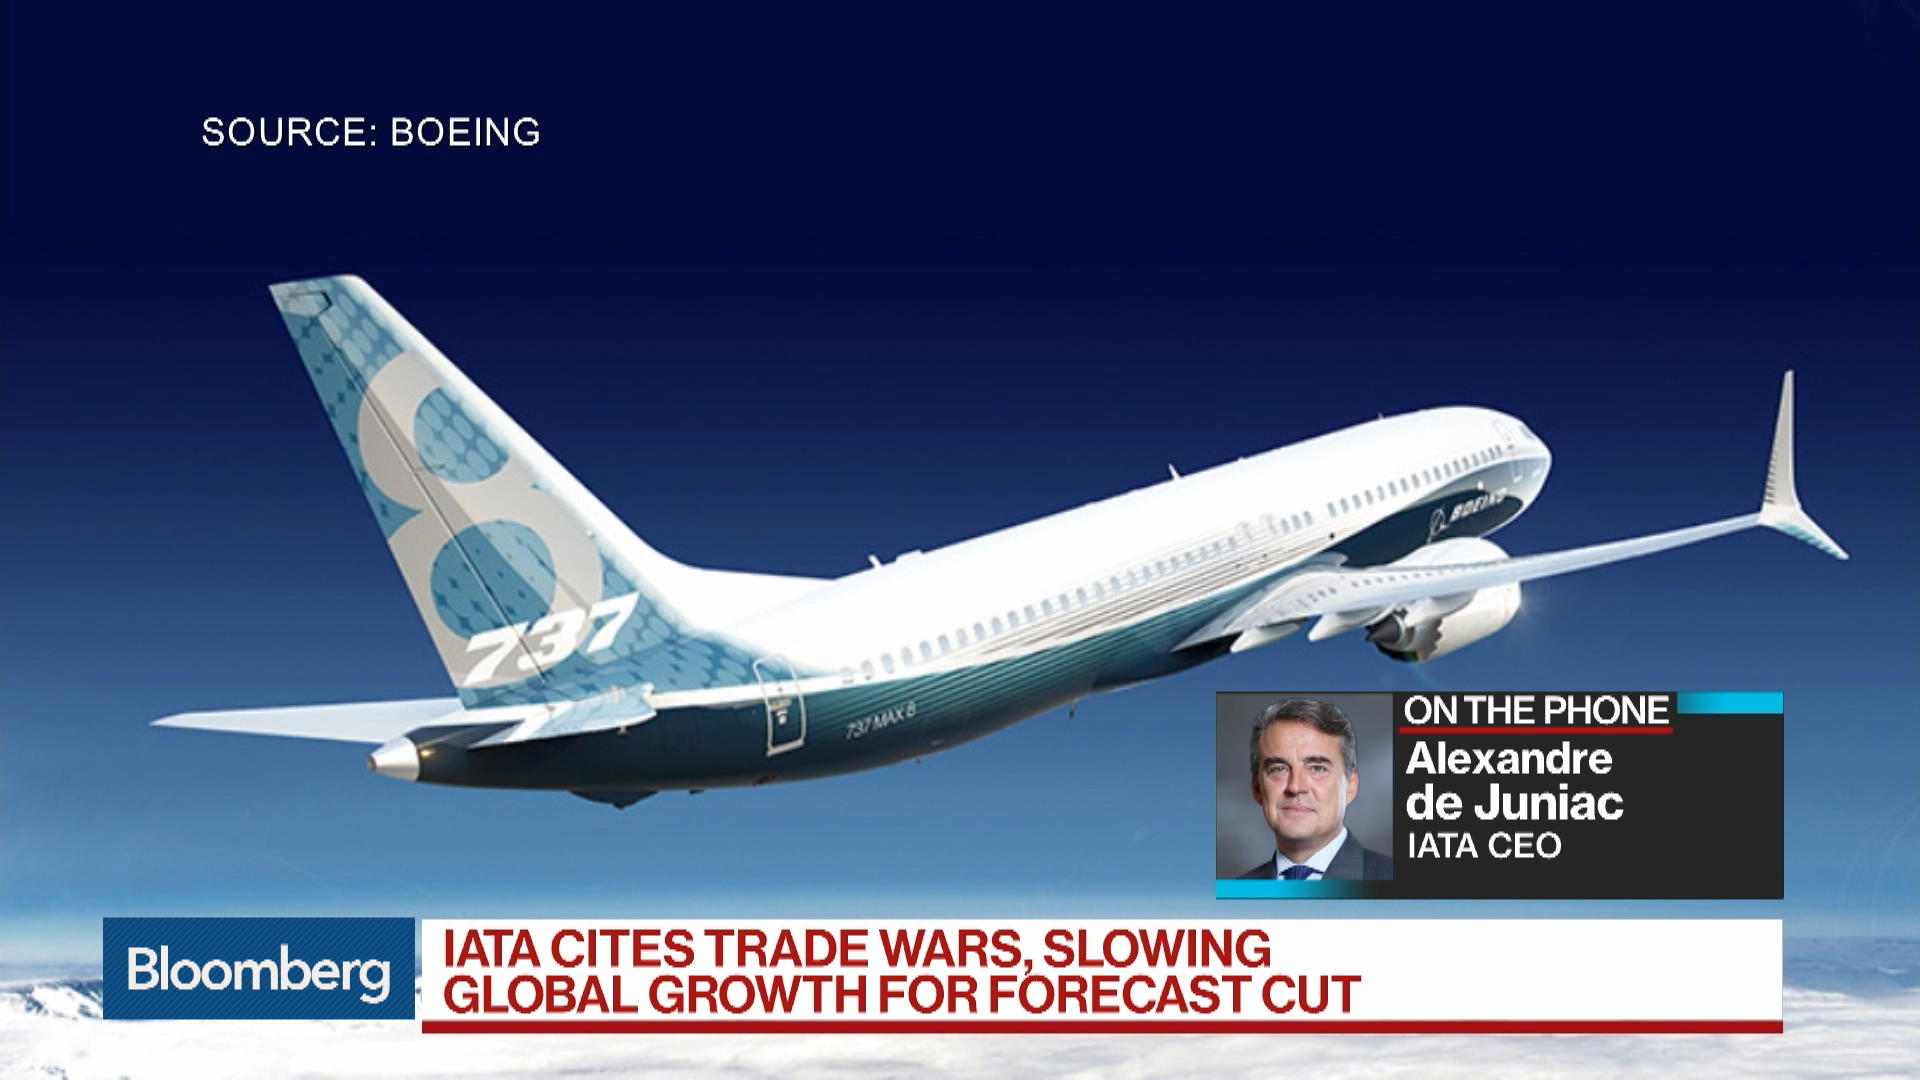 IATA CEO Sees Pressure for European Airlines to Retire Older Parts of Fleet